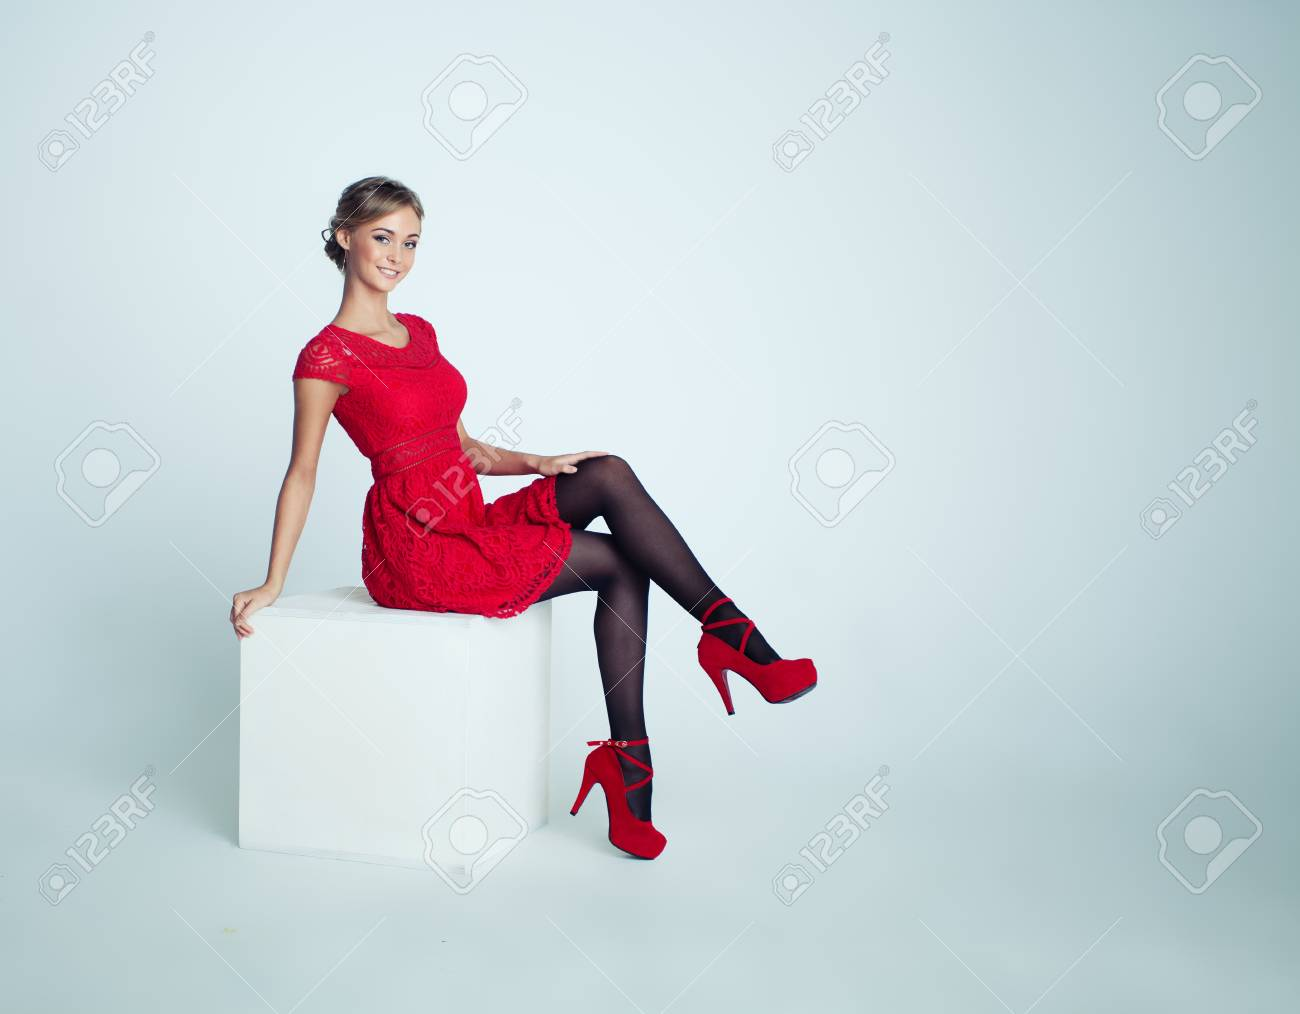 Happy Woman in Red Dress on White Background - 103152810